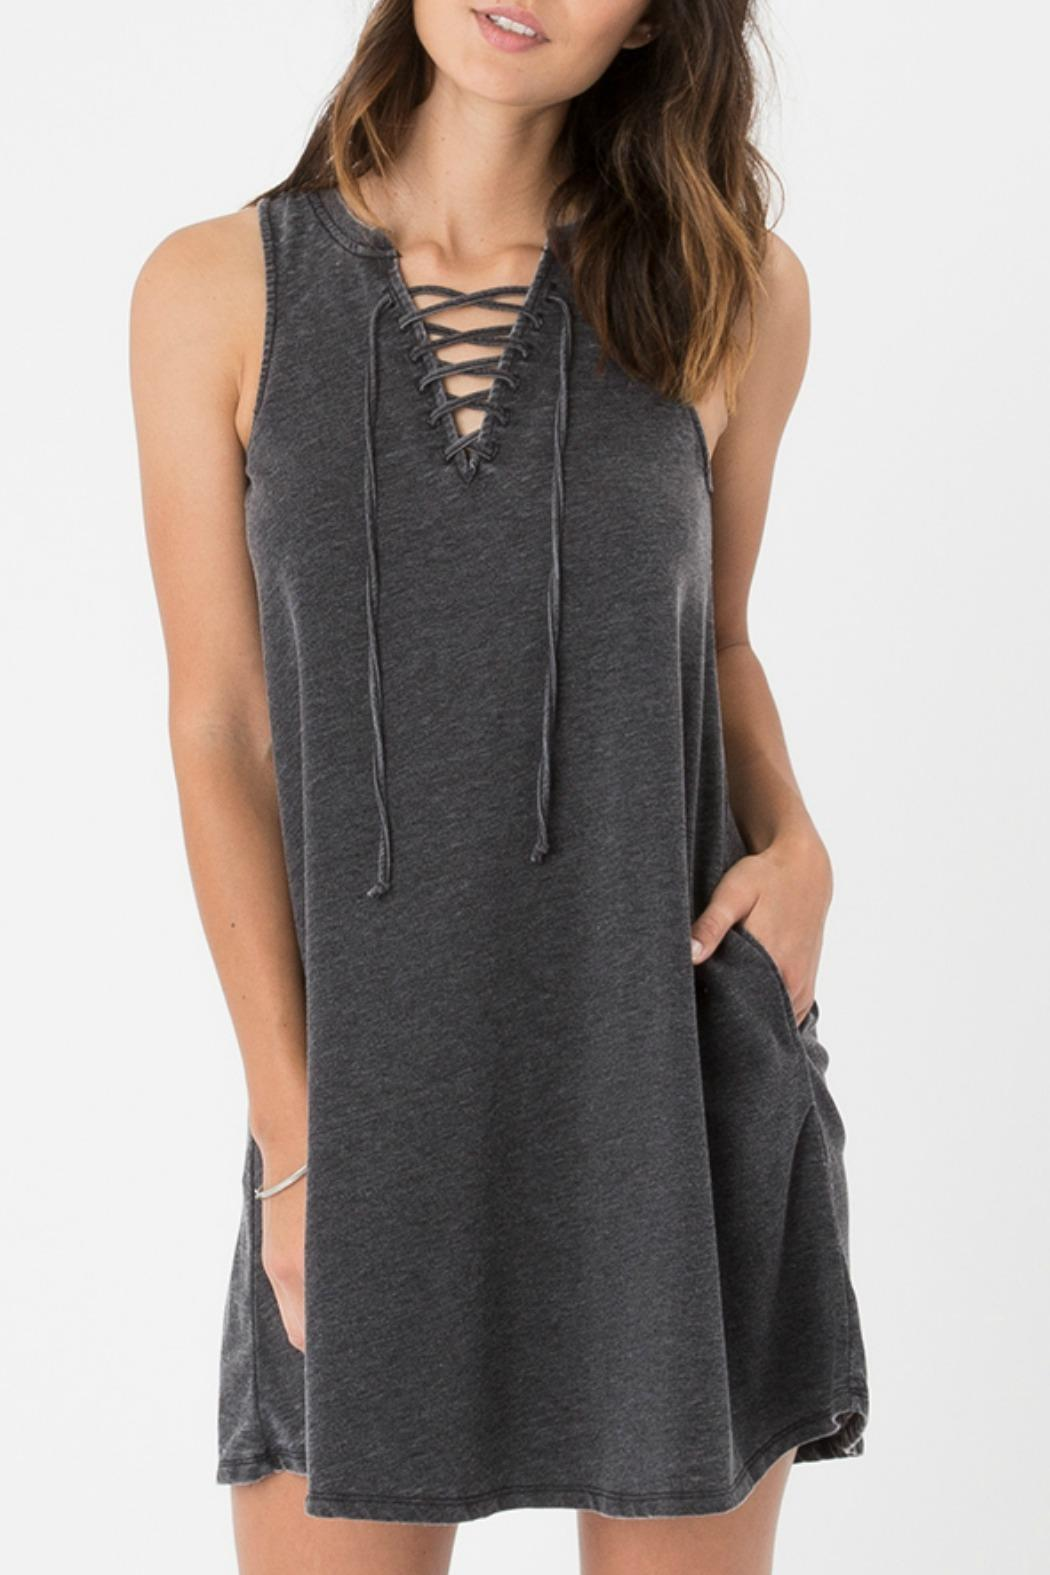 z supply Lace-Up Mini Dress - Front Cropped Image